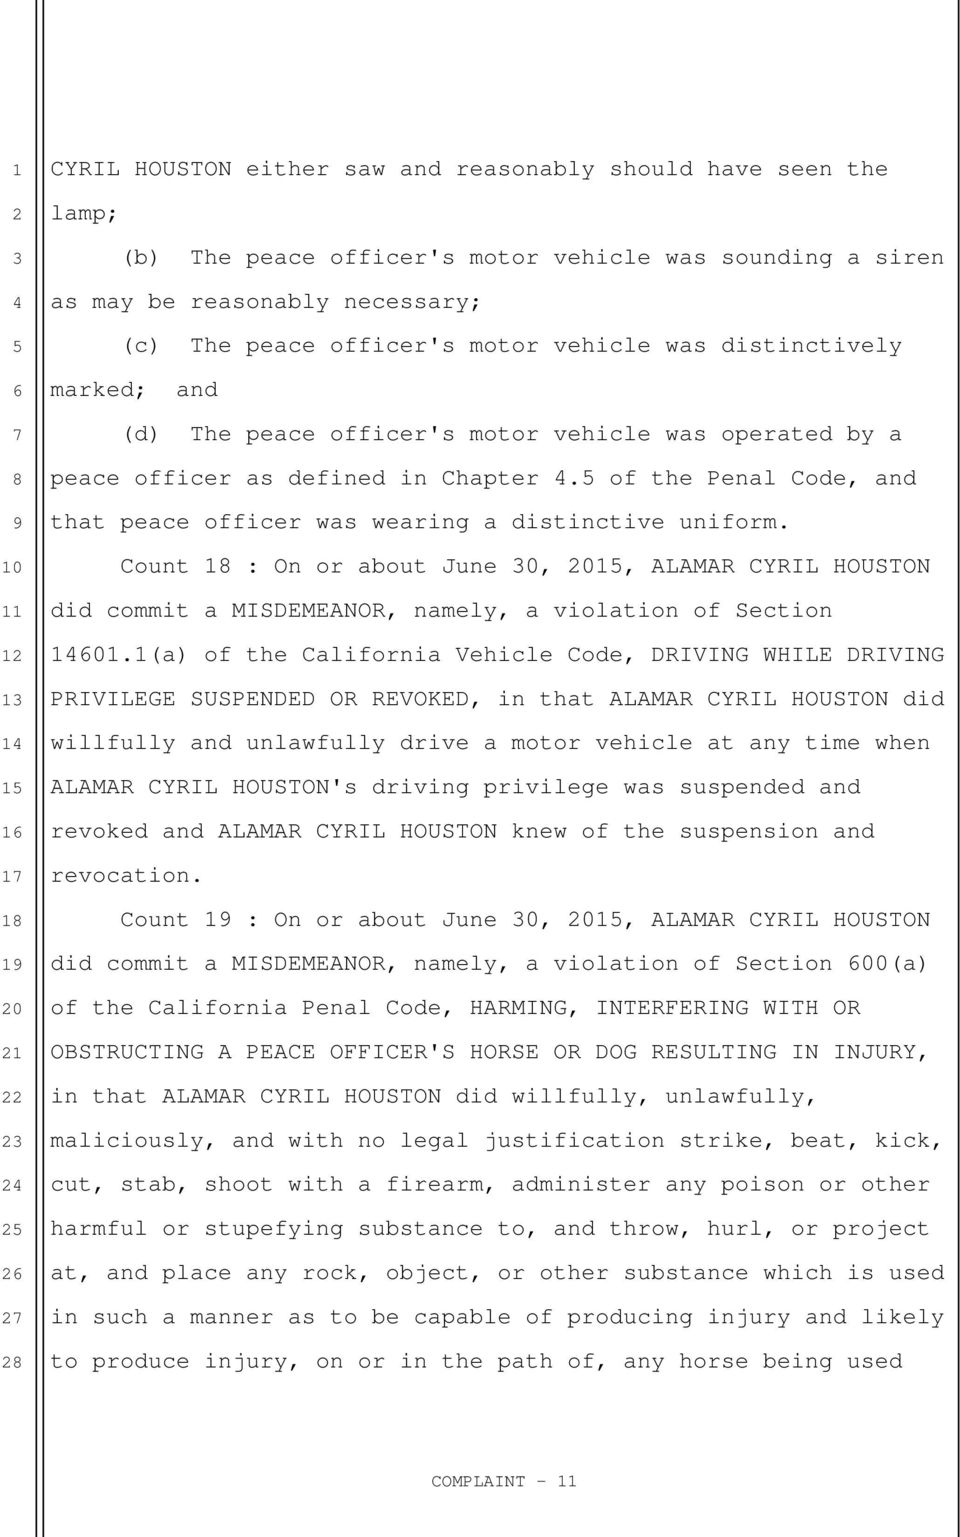 Count 1 : On or about June 0,, ALAMAR CYRIL HOUSTON did commit a MISDEMEANOR, namely, a violation of Section 01.